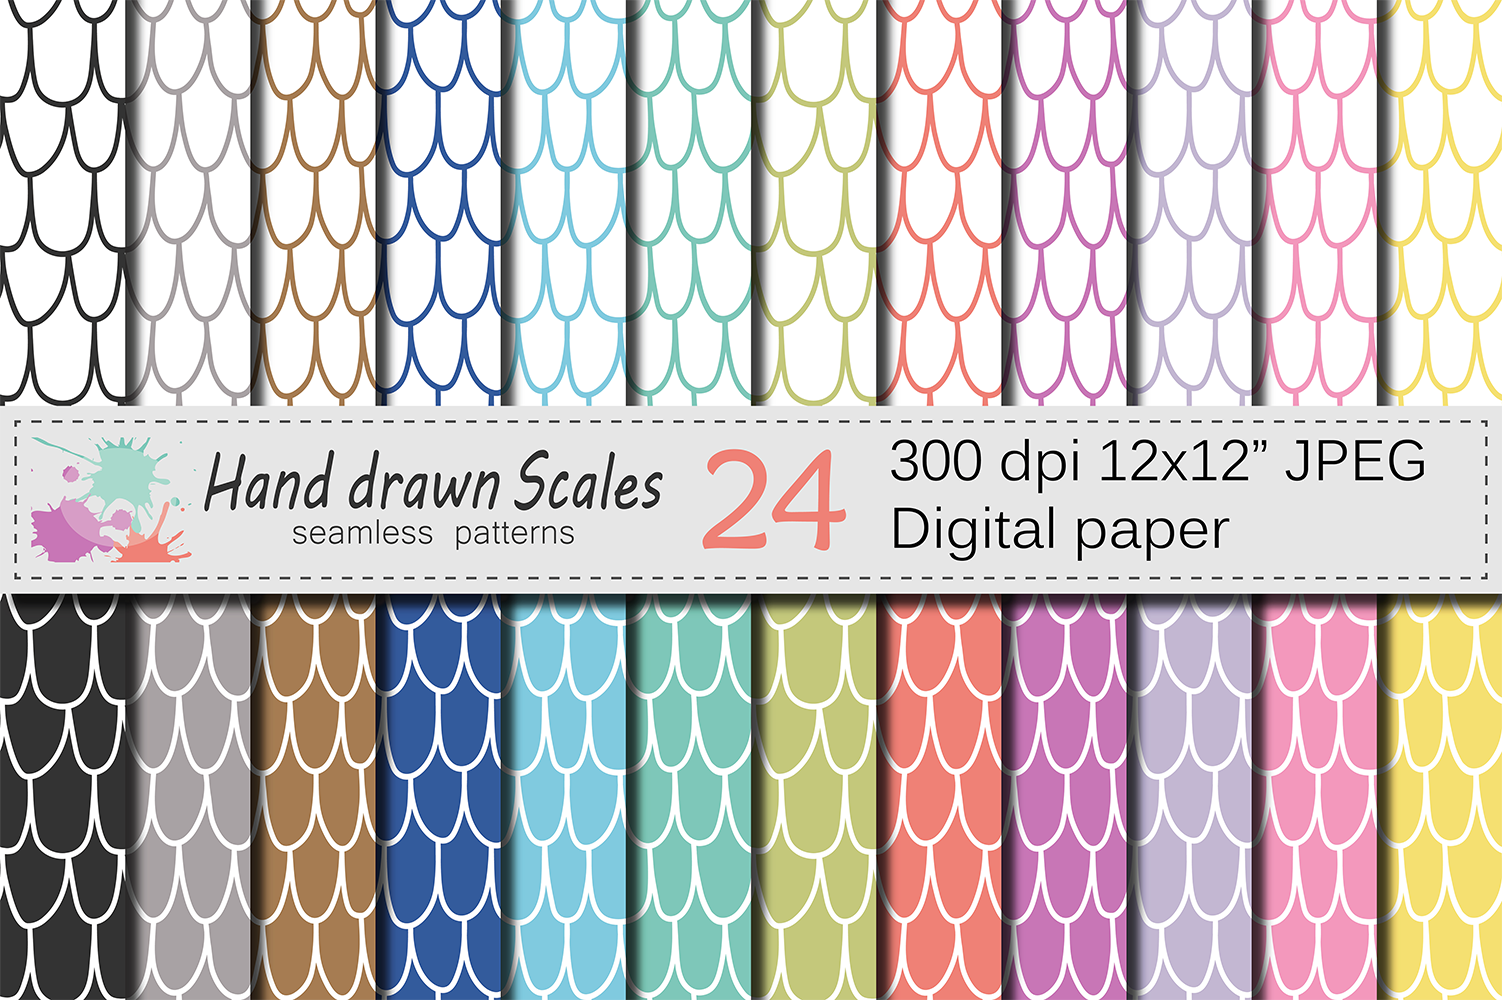 Hand Drawn Scales Seamless Digital Paper Graphic Patterns By VR Digital Design